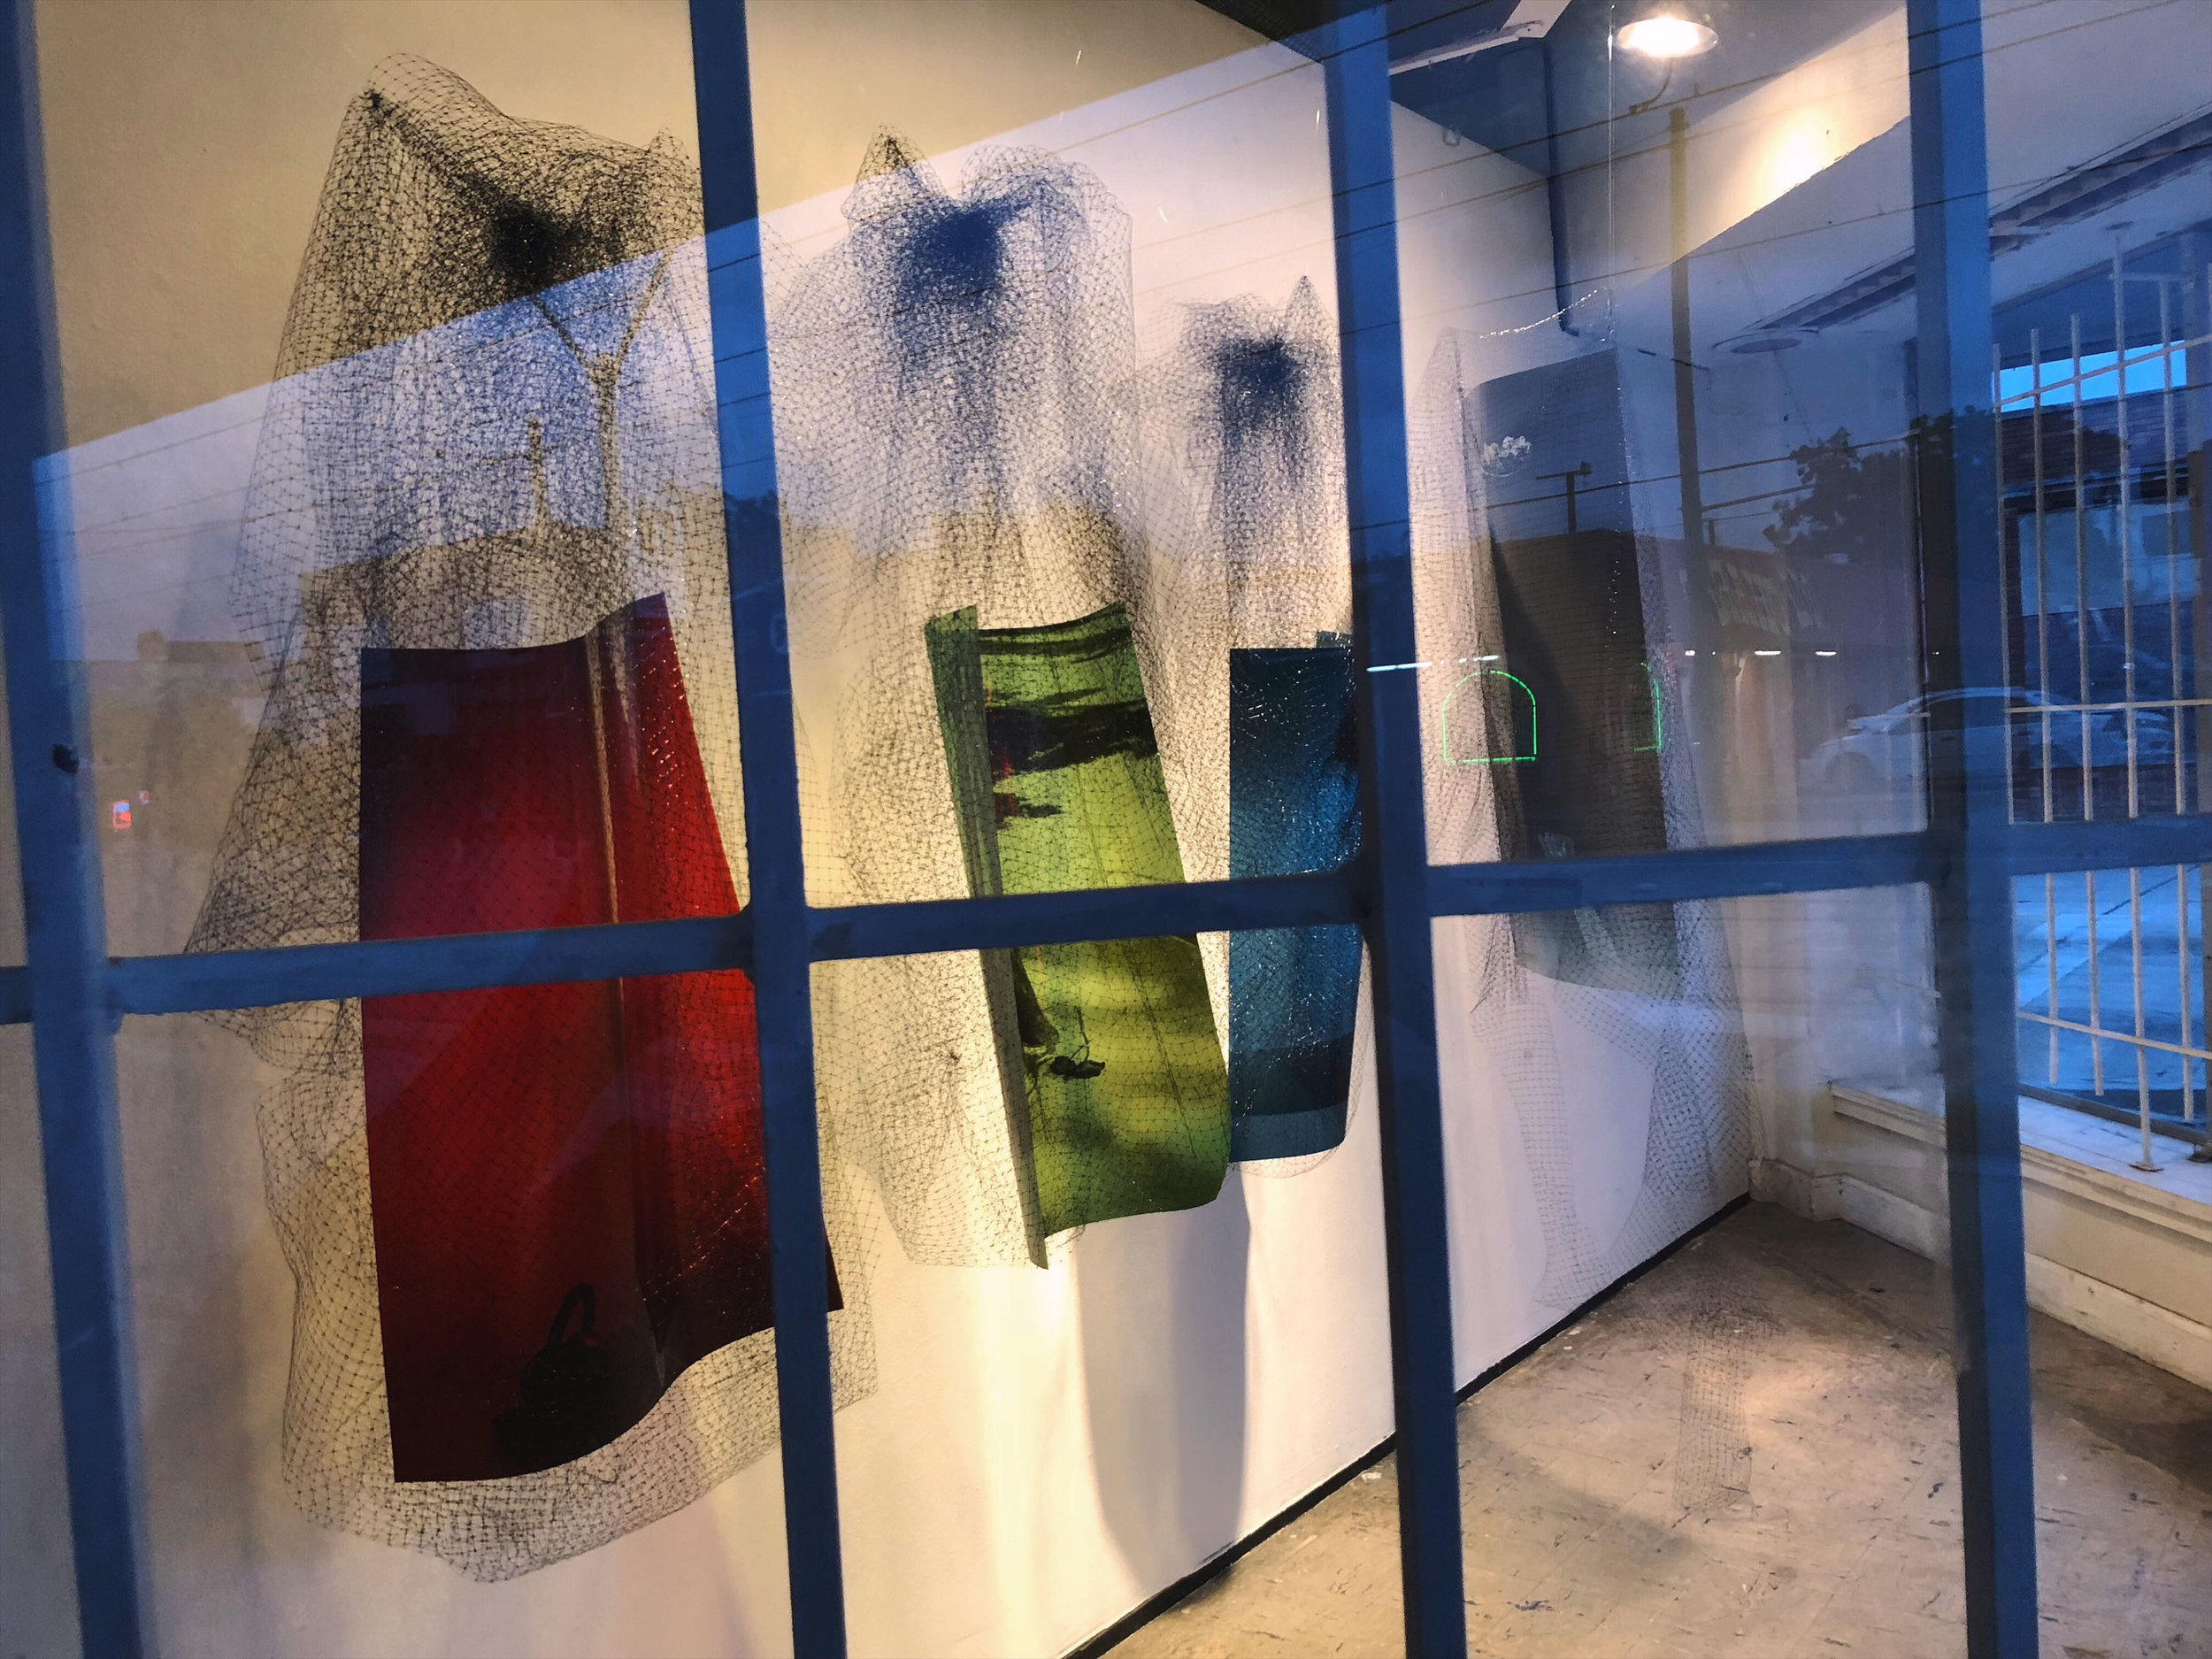 One view through the window. Each image is printed on transparency film, and suspended within bird block netting.  In the Window BOX viewers will experience Wallace's imaginings for potential solutions around thwarted self-preservation by using layers of photography, collage, objects, and texts that seek to suture the binaries.